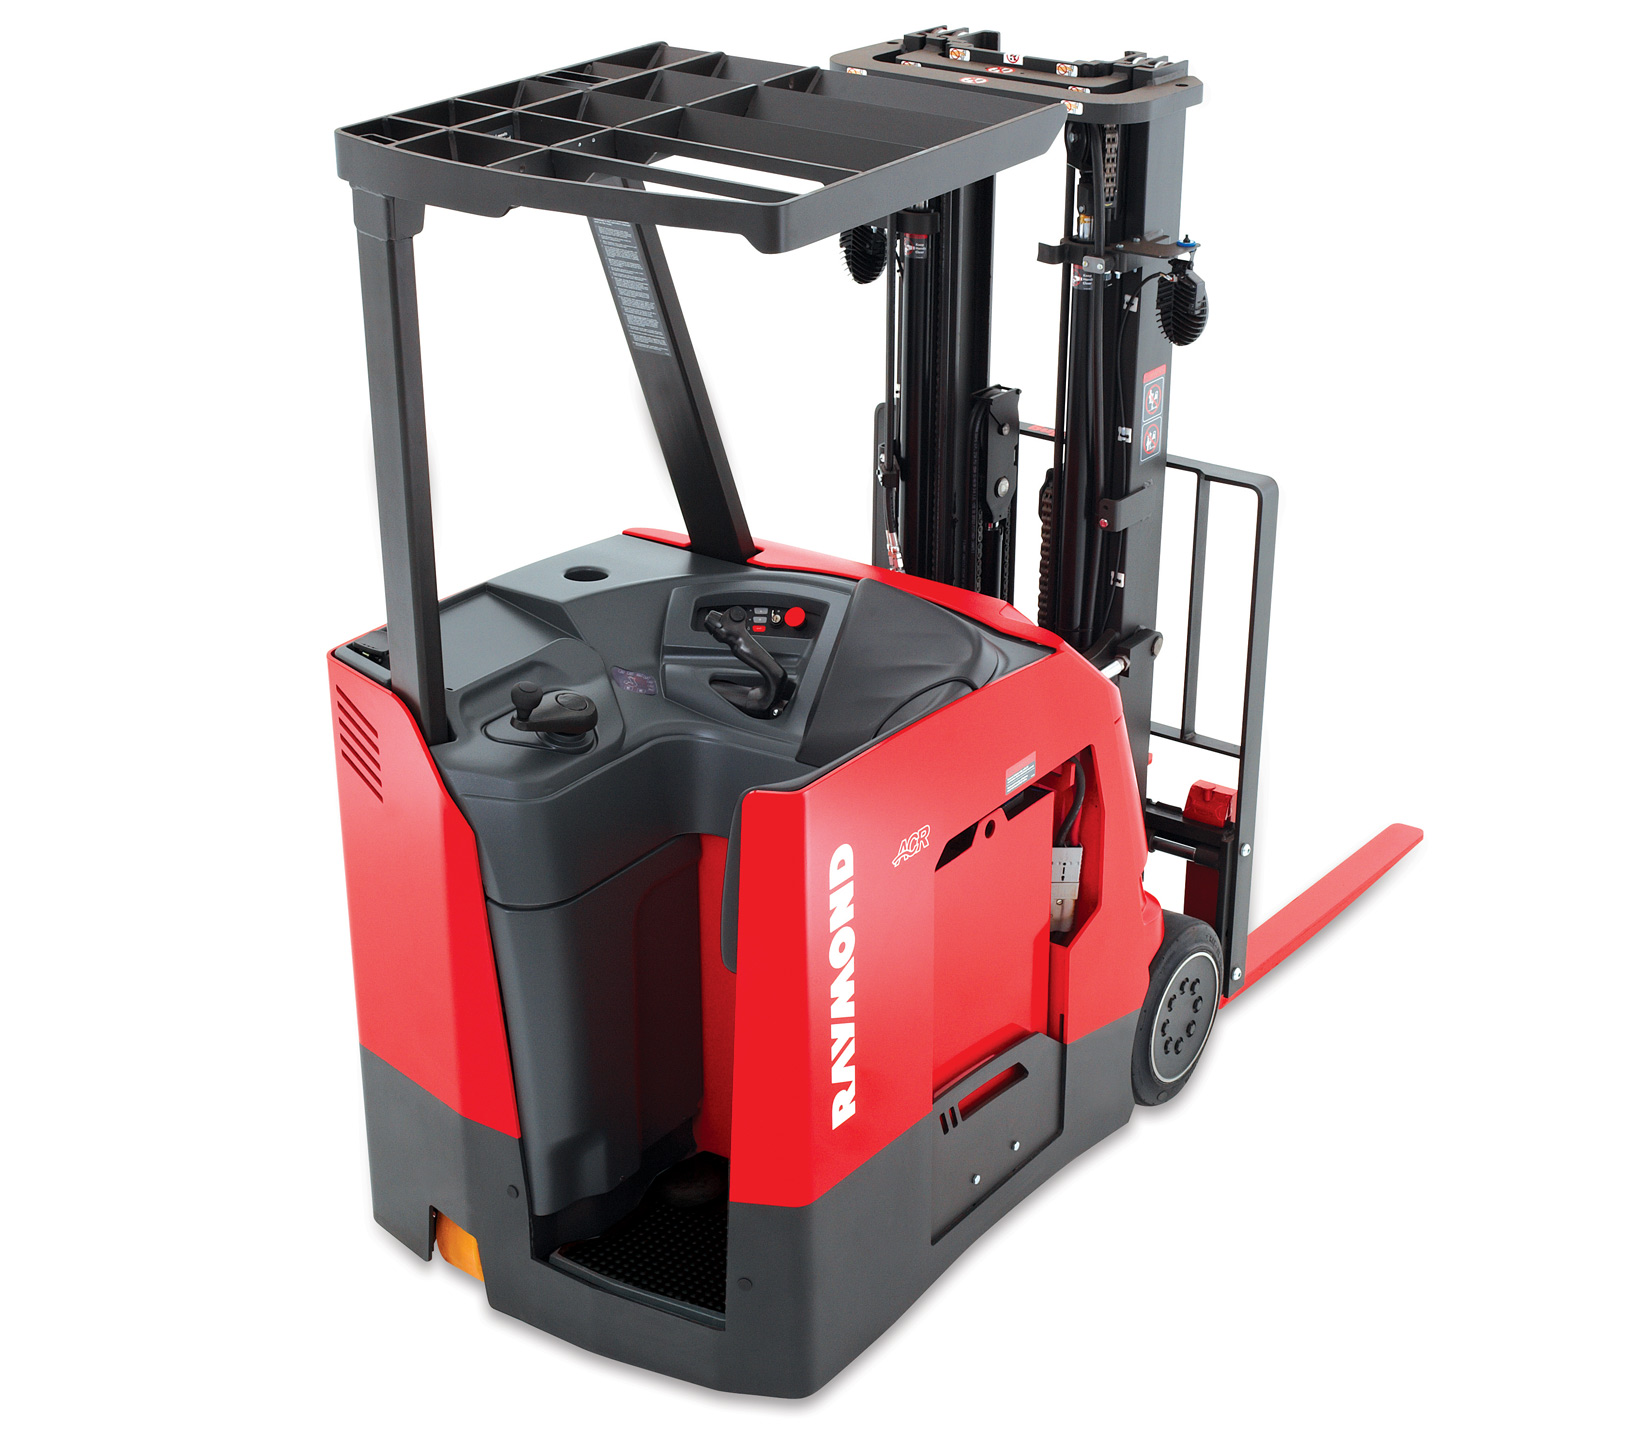 counterbalanced forklift. Double tap to zoom